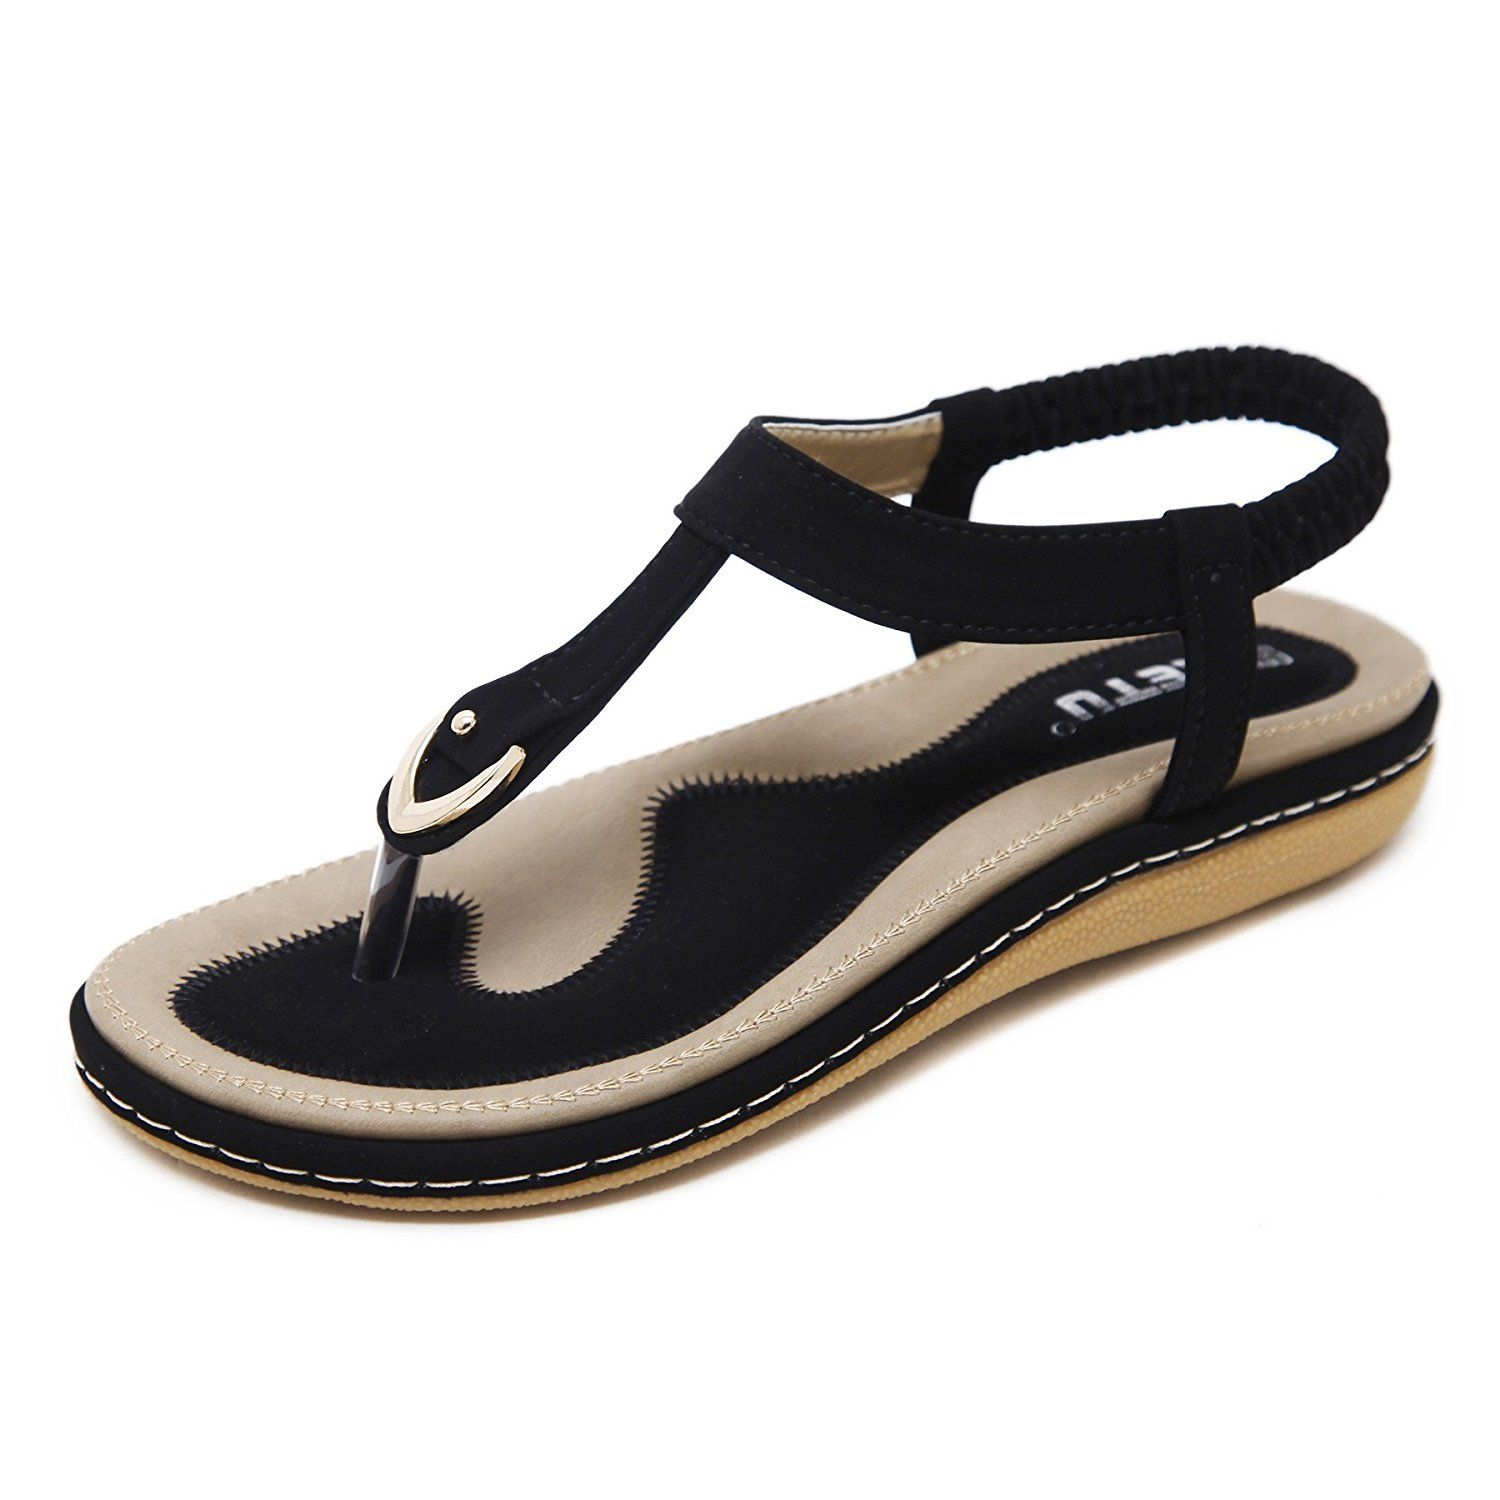 0fd6bb4acc5 Meeshine Women s Bohemia Flip Flops Summer Beach T-Strap Flat Sandals  Comfort Walking Shoes     Thanks a lot for visiting our picture.